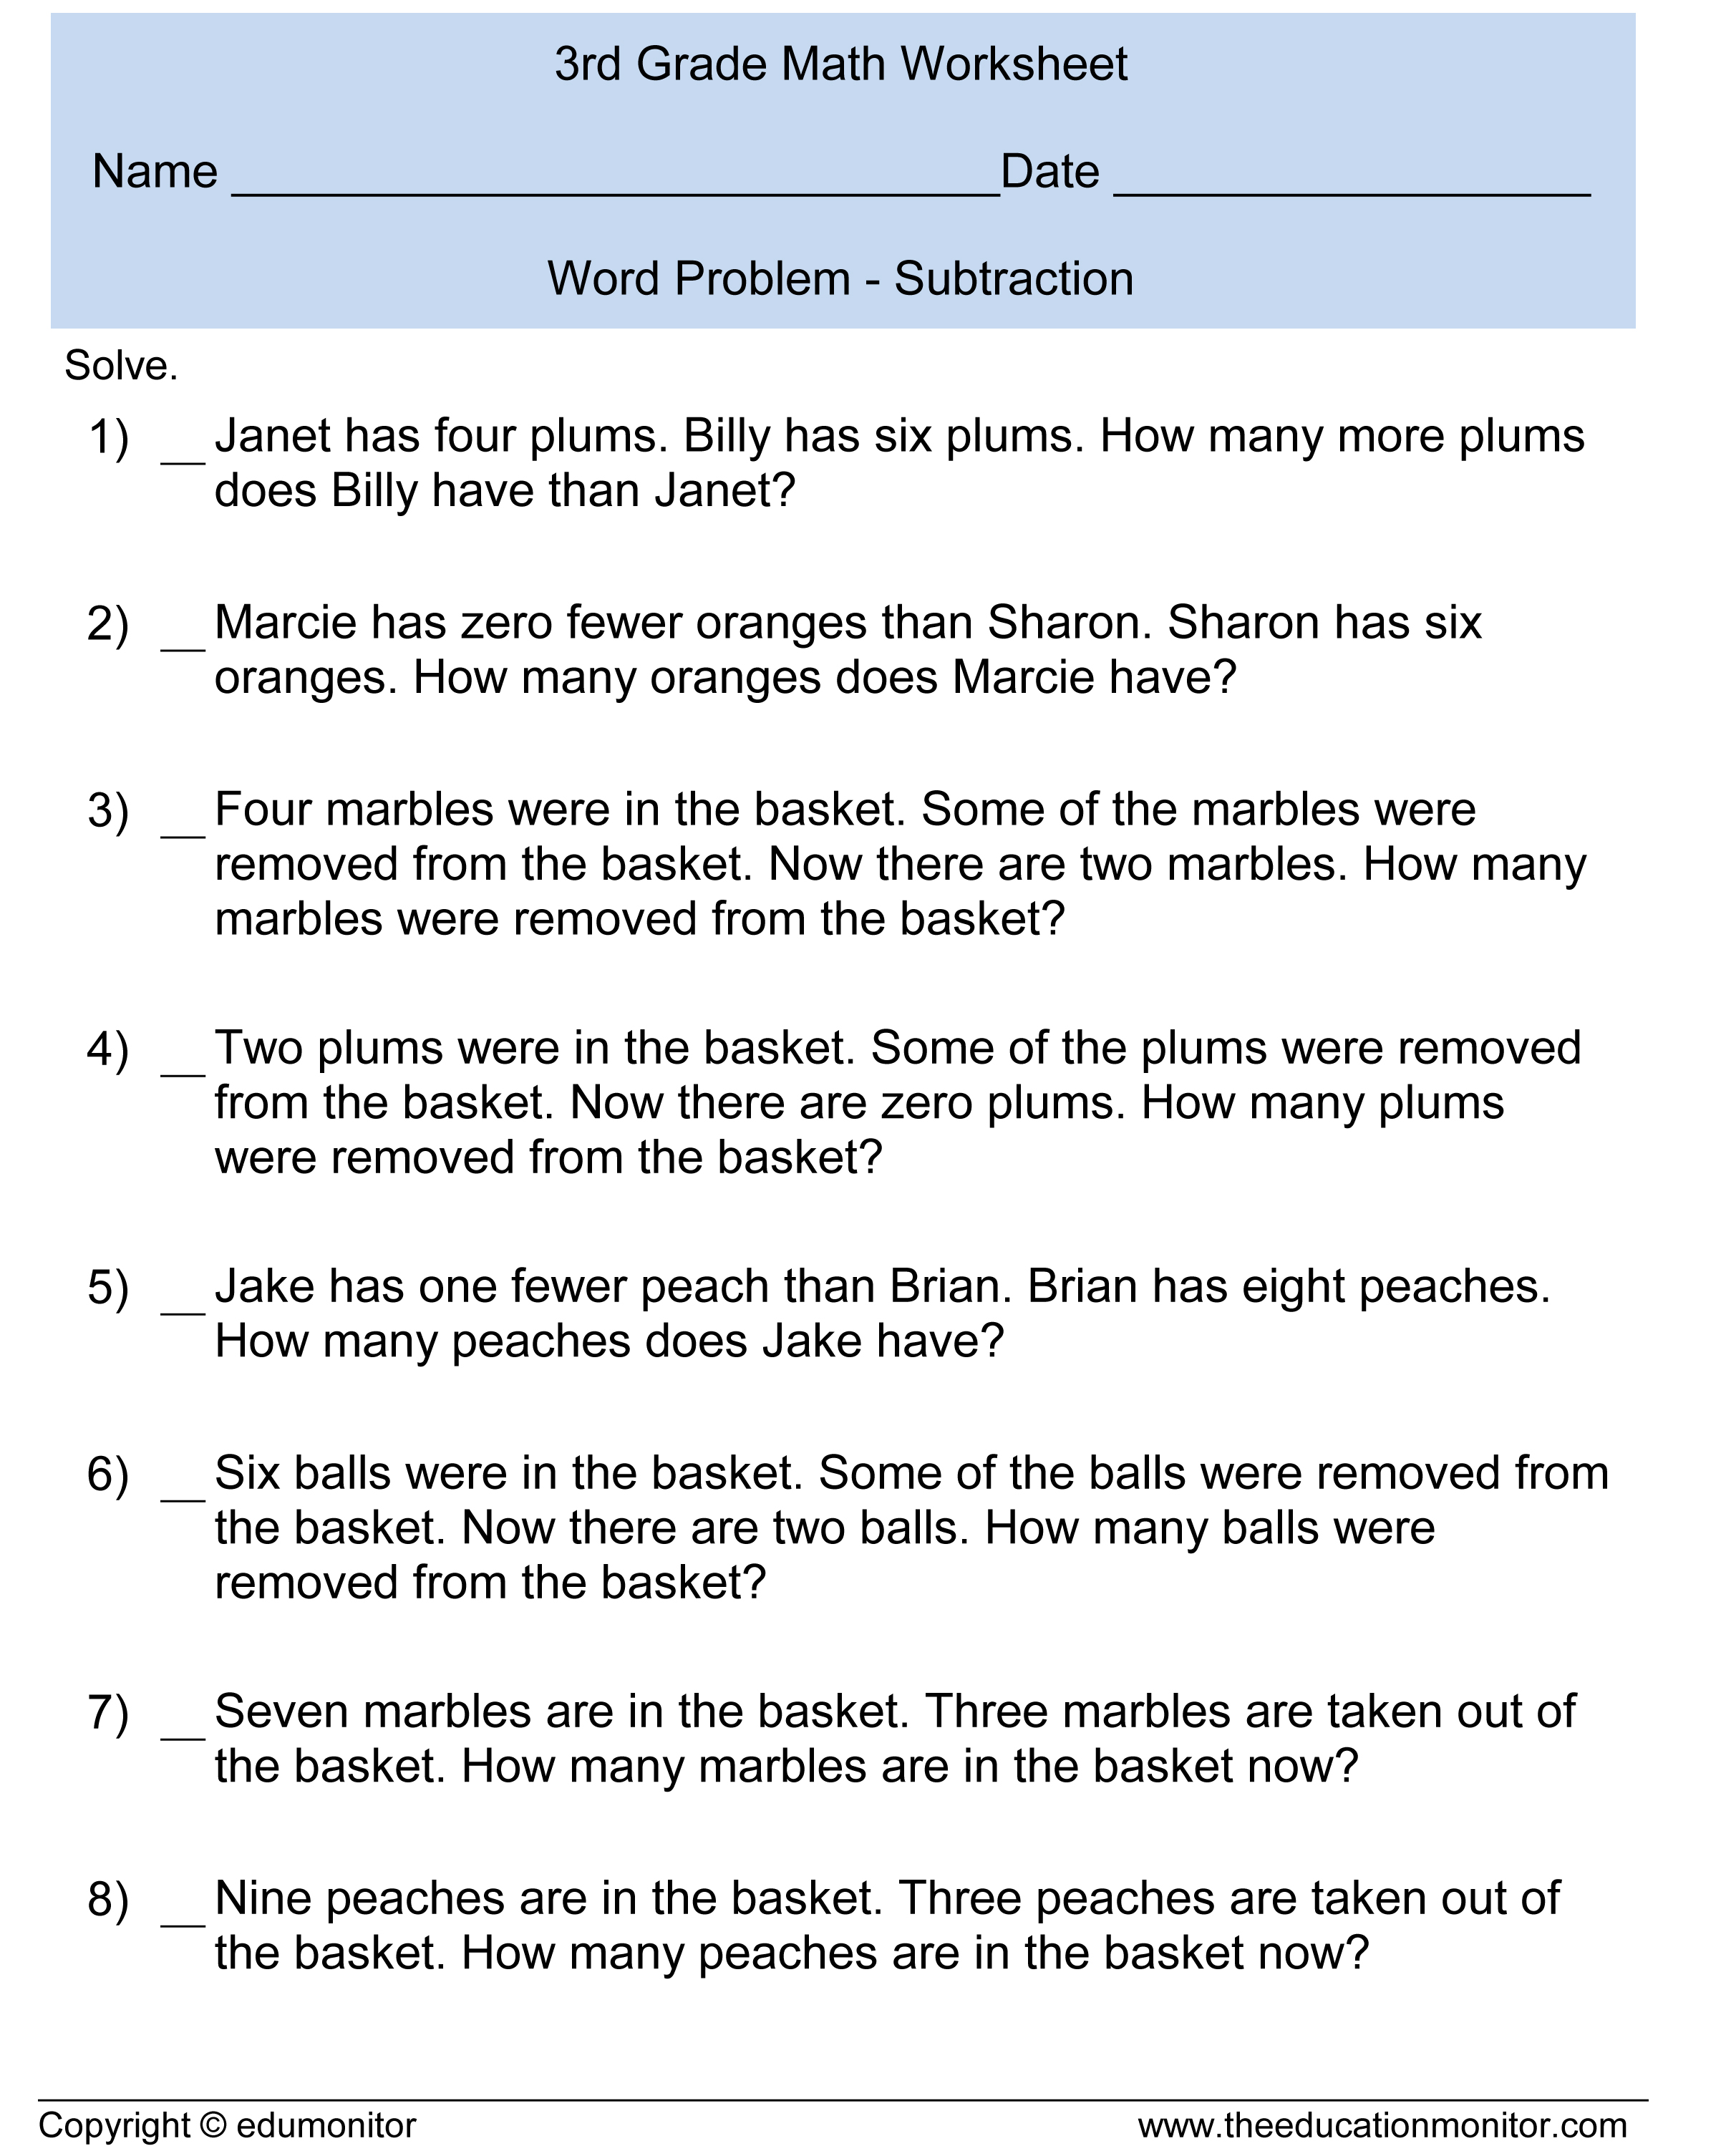 math worksheet : subtraction word problems 3rd grade for your kids : Subtraction Word Problems 3rd Grade